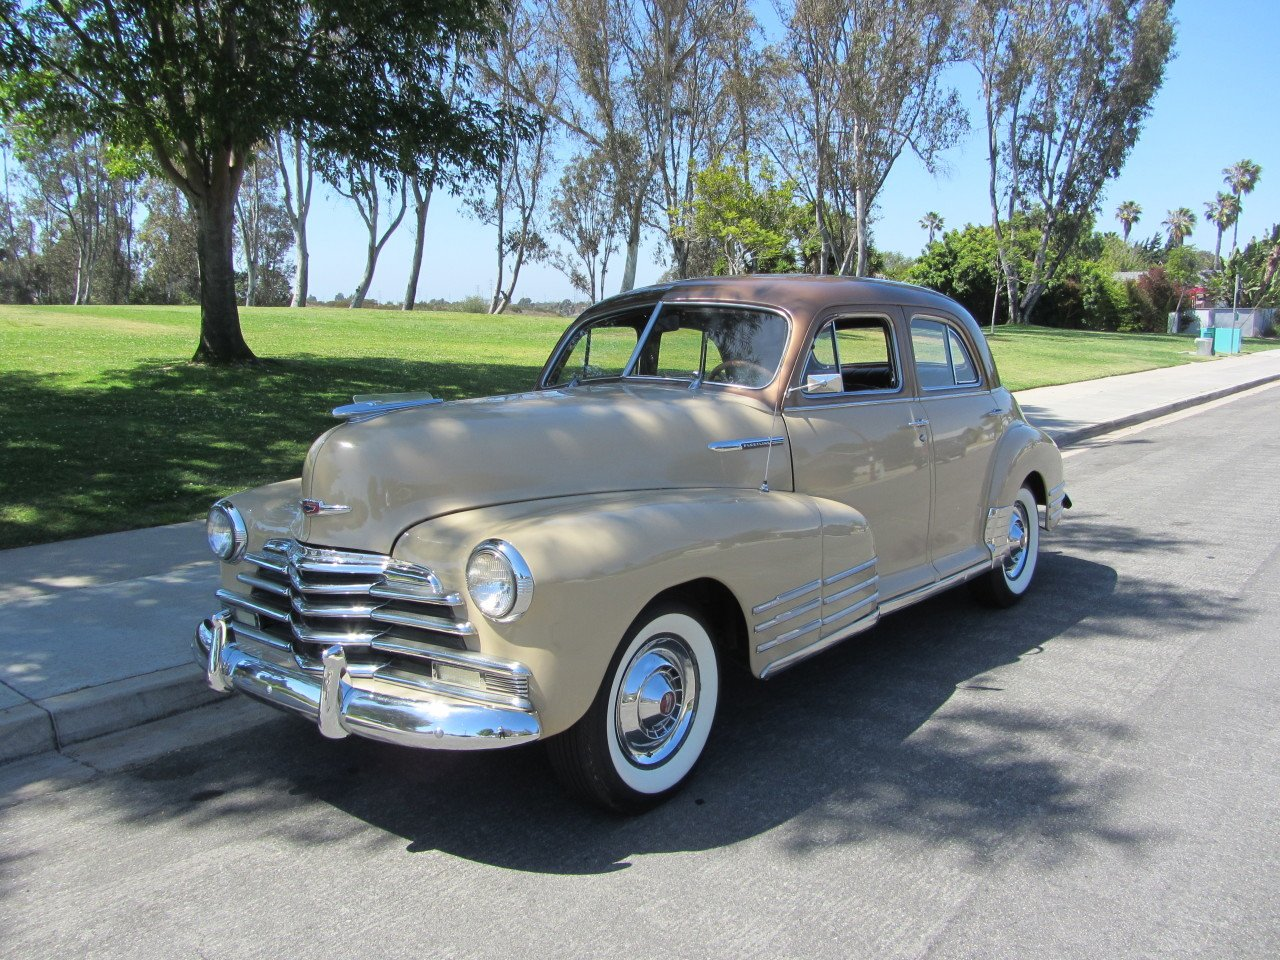 Used Chrysler San Diego >> 1947 Chevrolet Fleetline for sale near San Diego, California 92122 - Classics on Autotrader